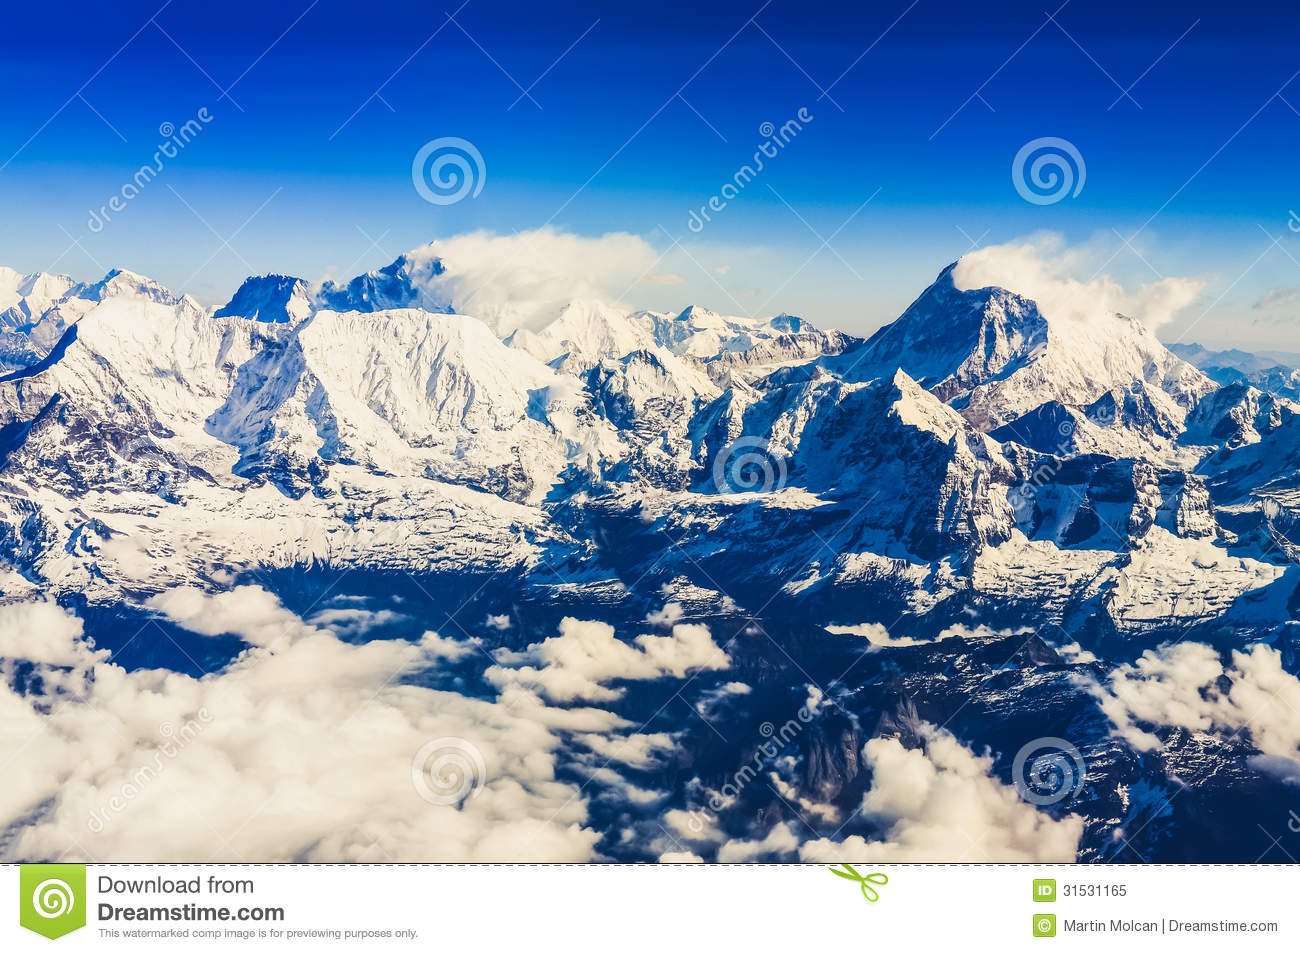 how is mount everest relationship to the himalayan mountains